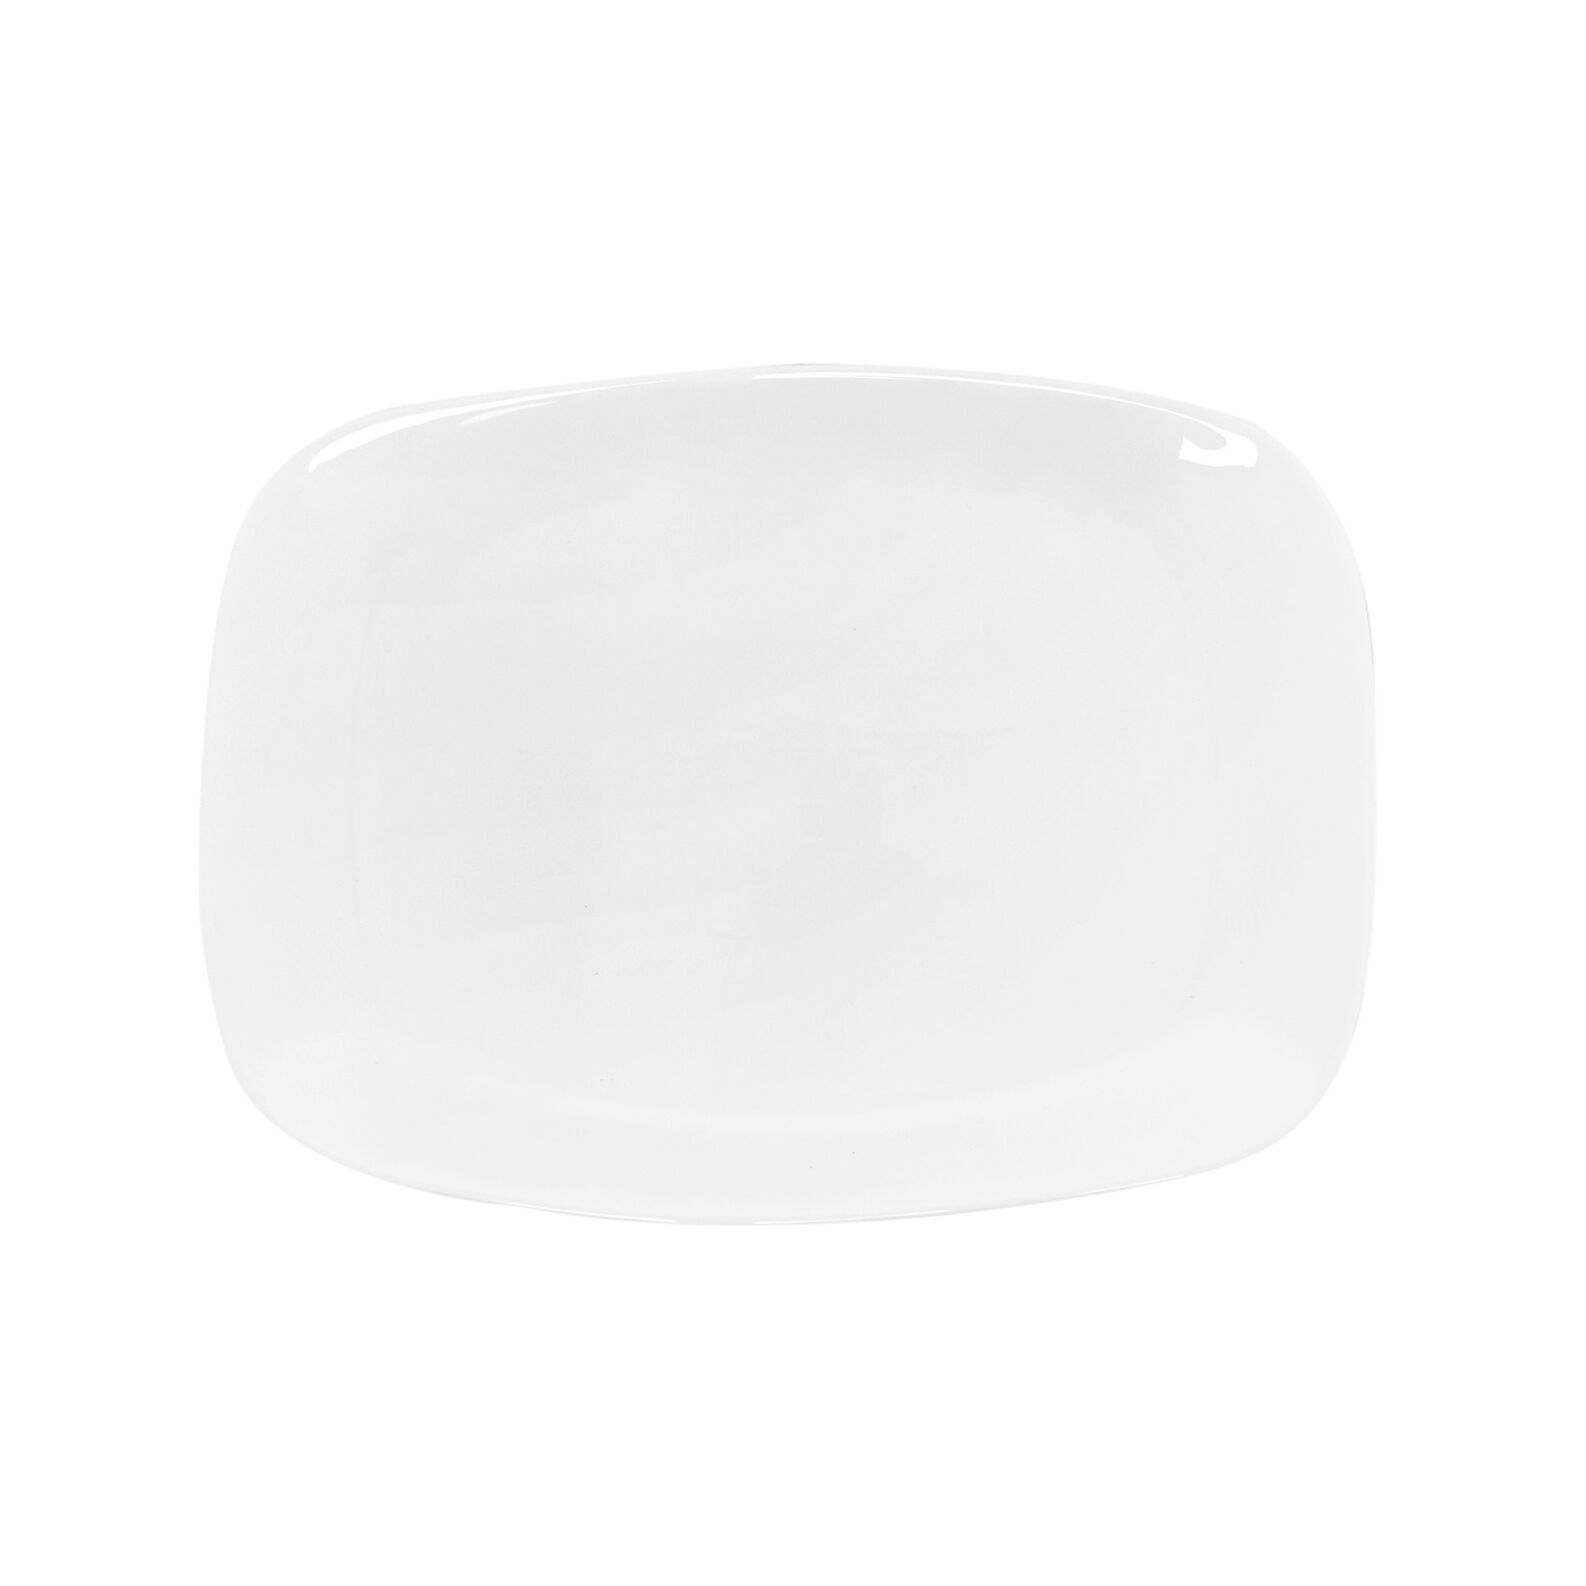 Easy serving dish in white glass